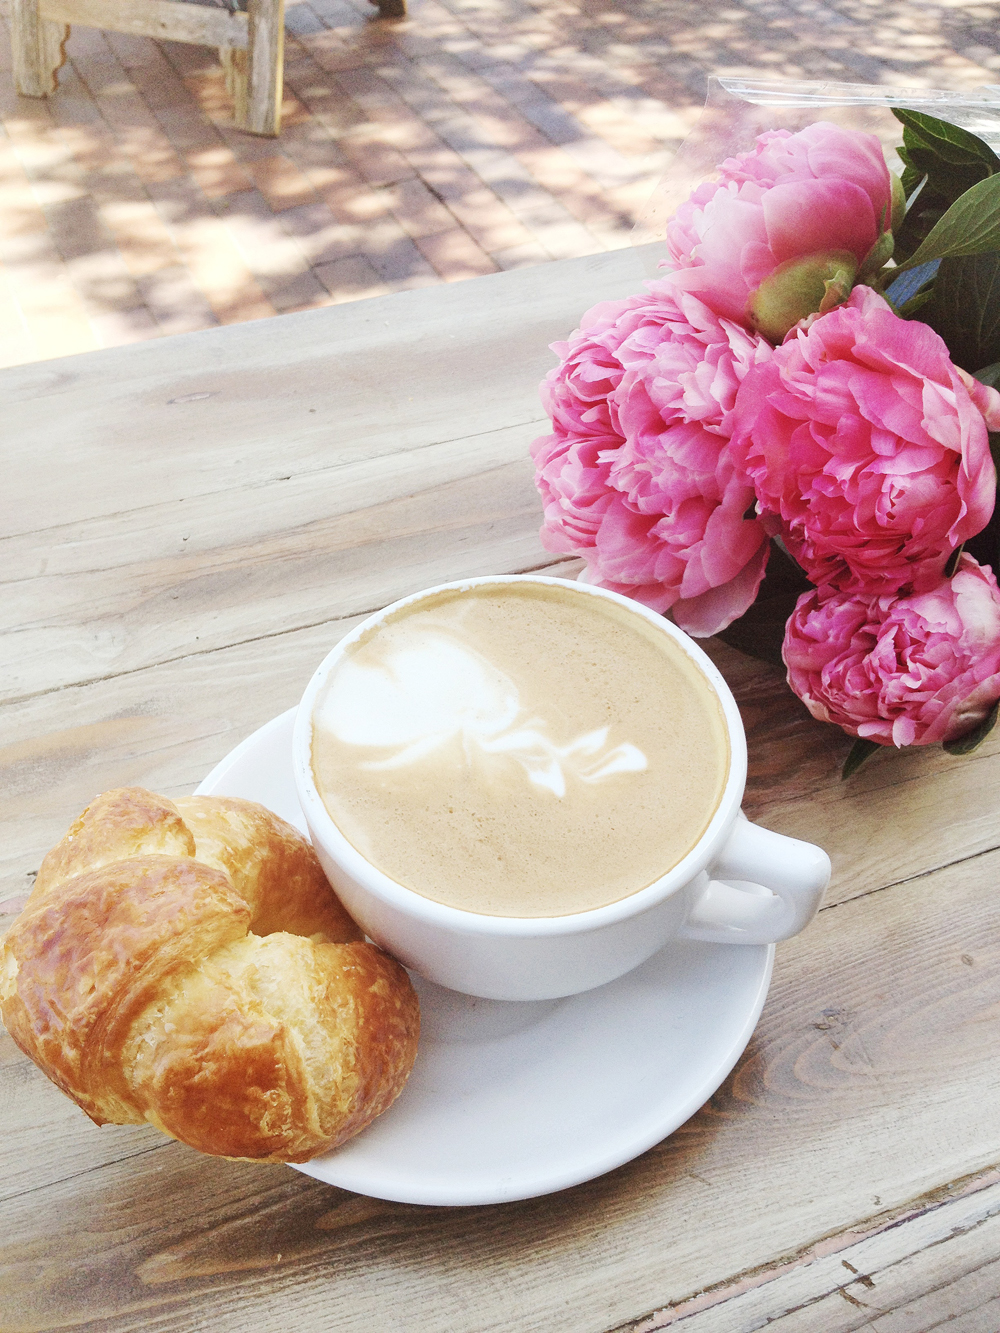 Pretty Pink Peonies Breakfast Latte and Croissant by Olivia Frescura